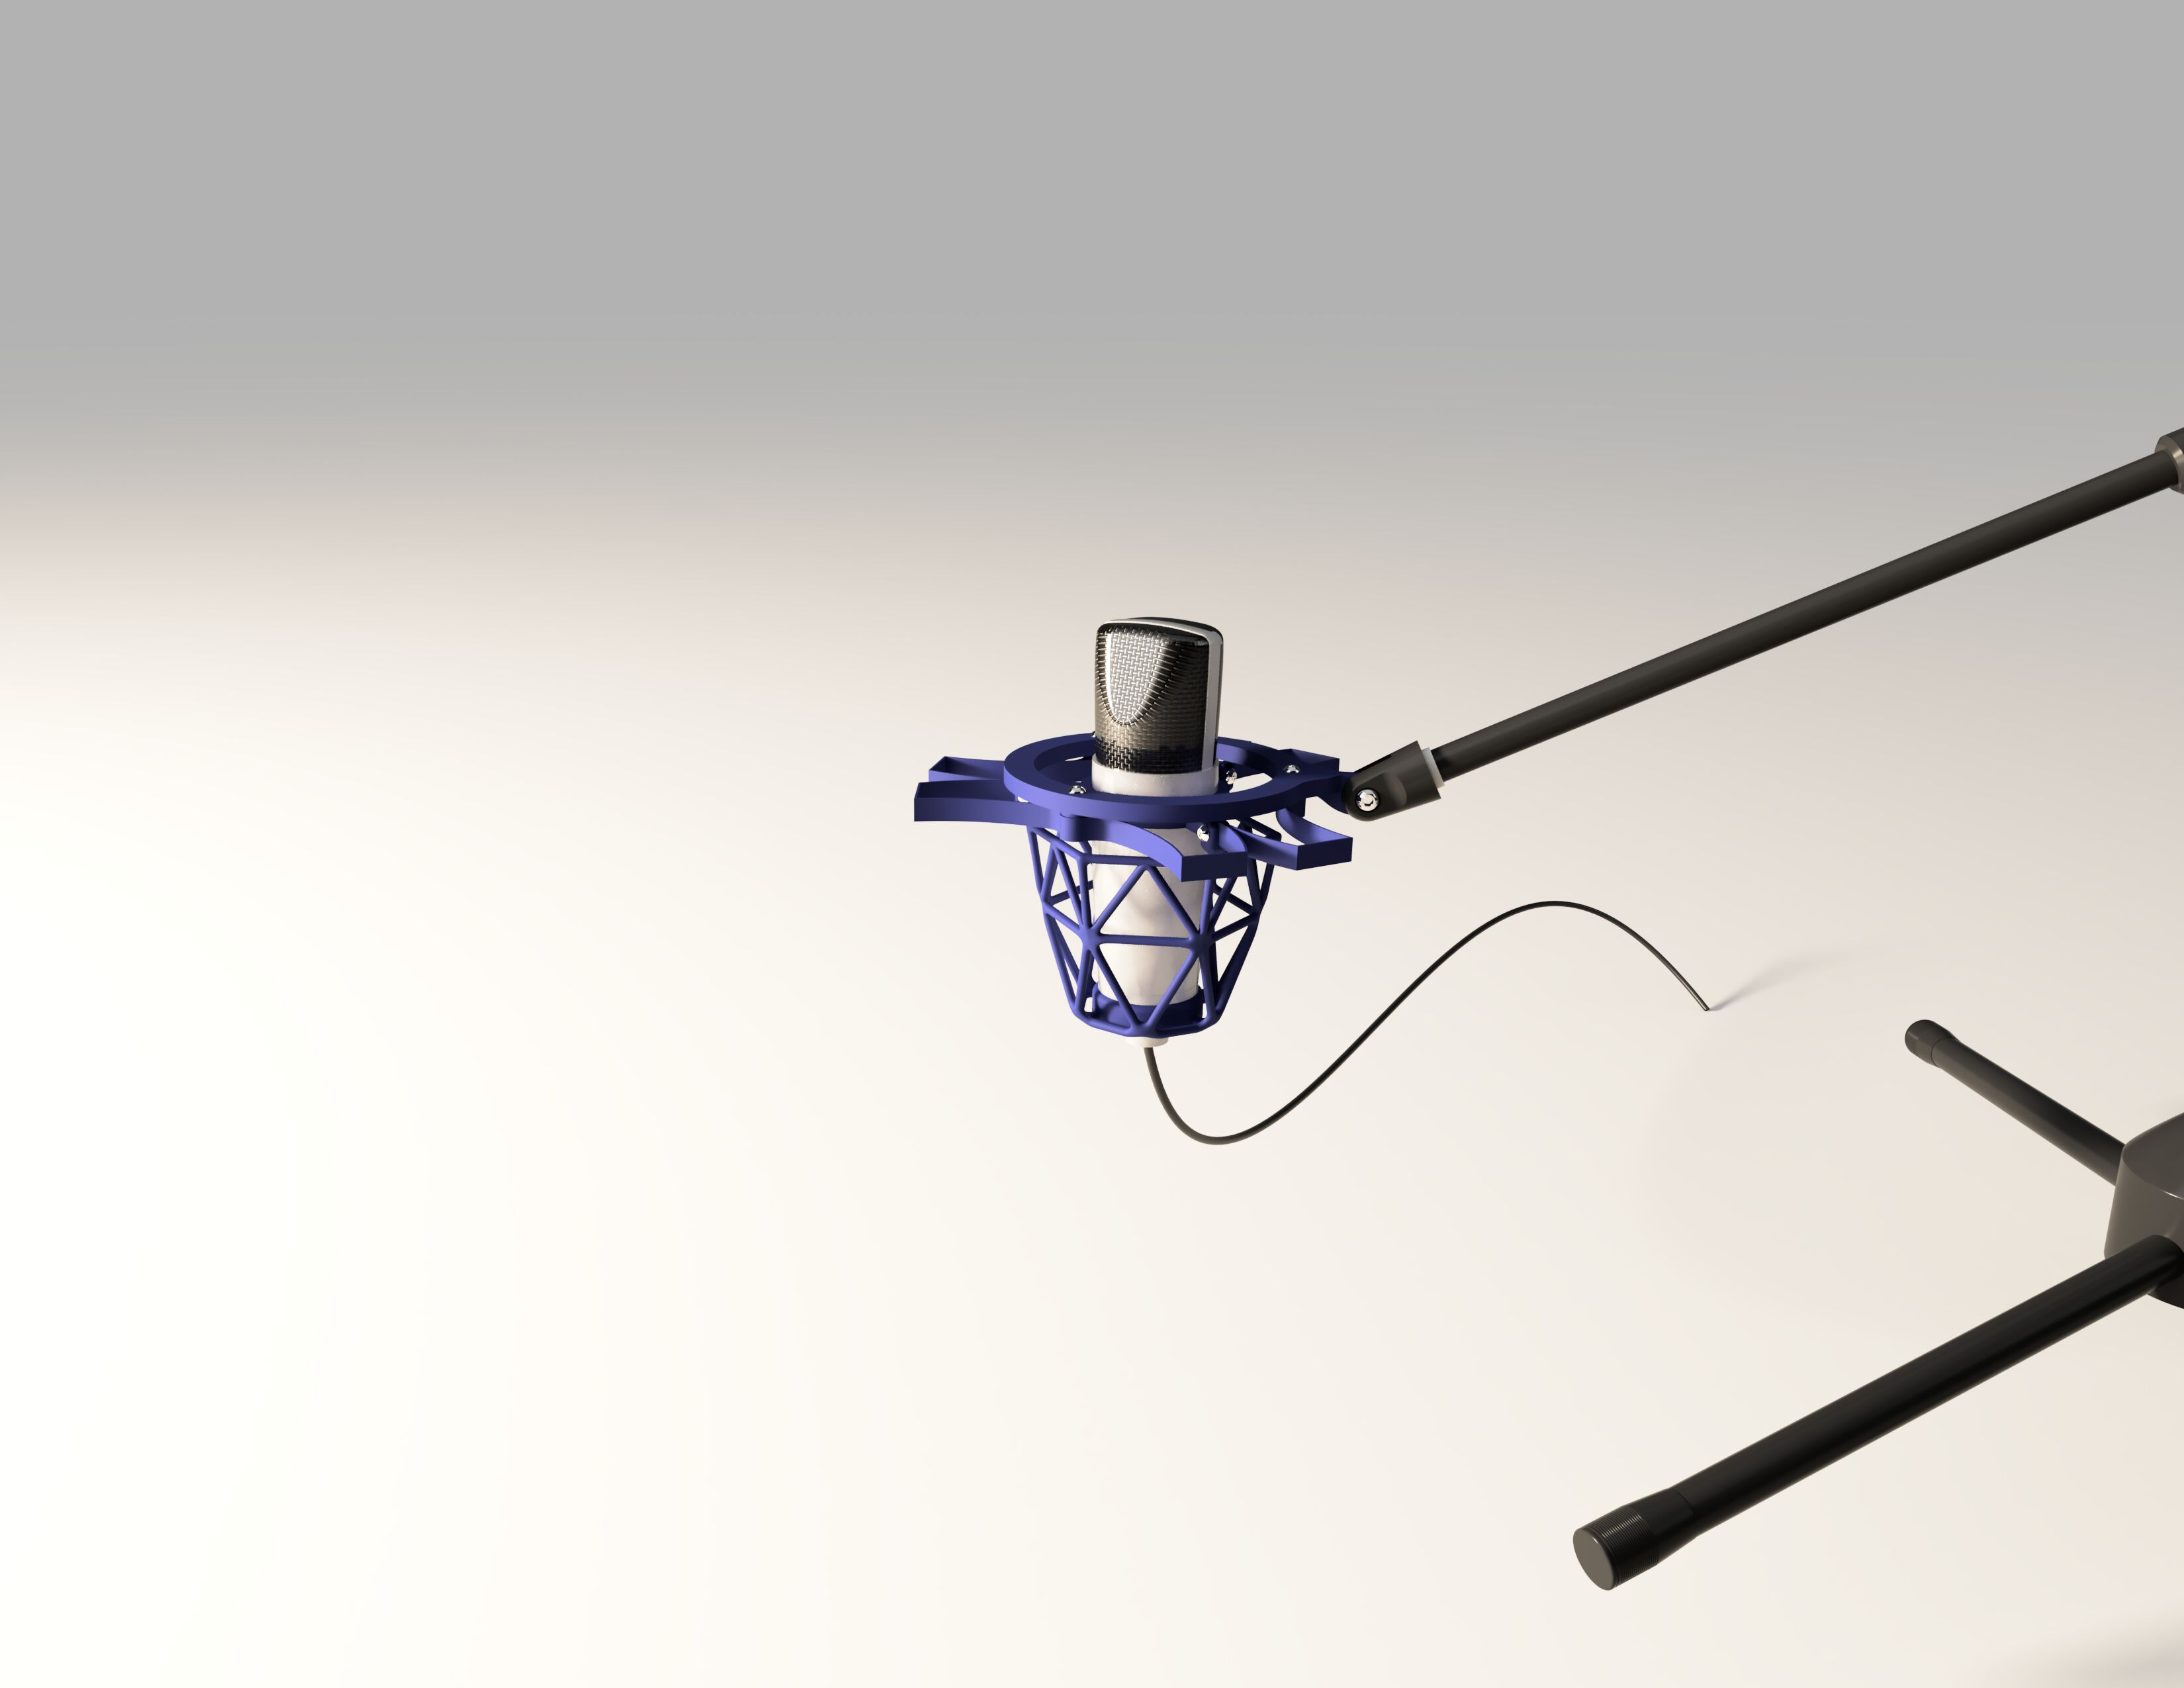 Microphone-shock-mount-assembly-2020-jun-23-12-56-39pm-000-customizedview62948099252-png-3500-3500